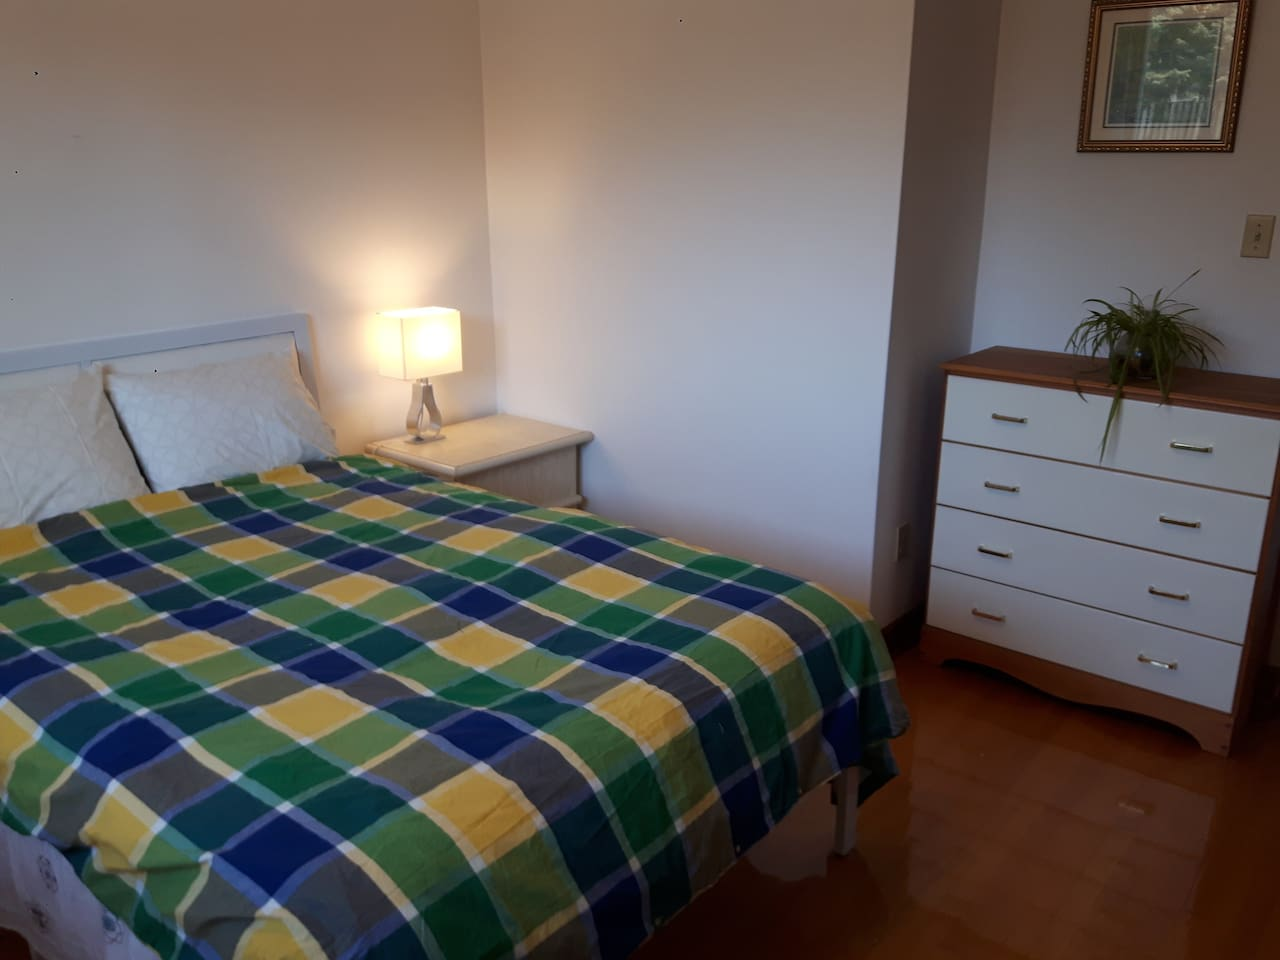 Spacious private room with a double bed, a nightstand, a lamp and a dresser